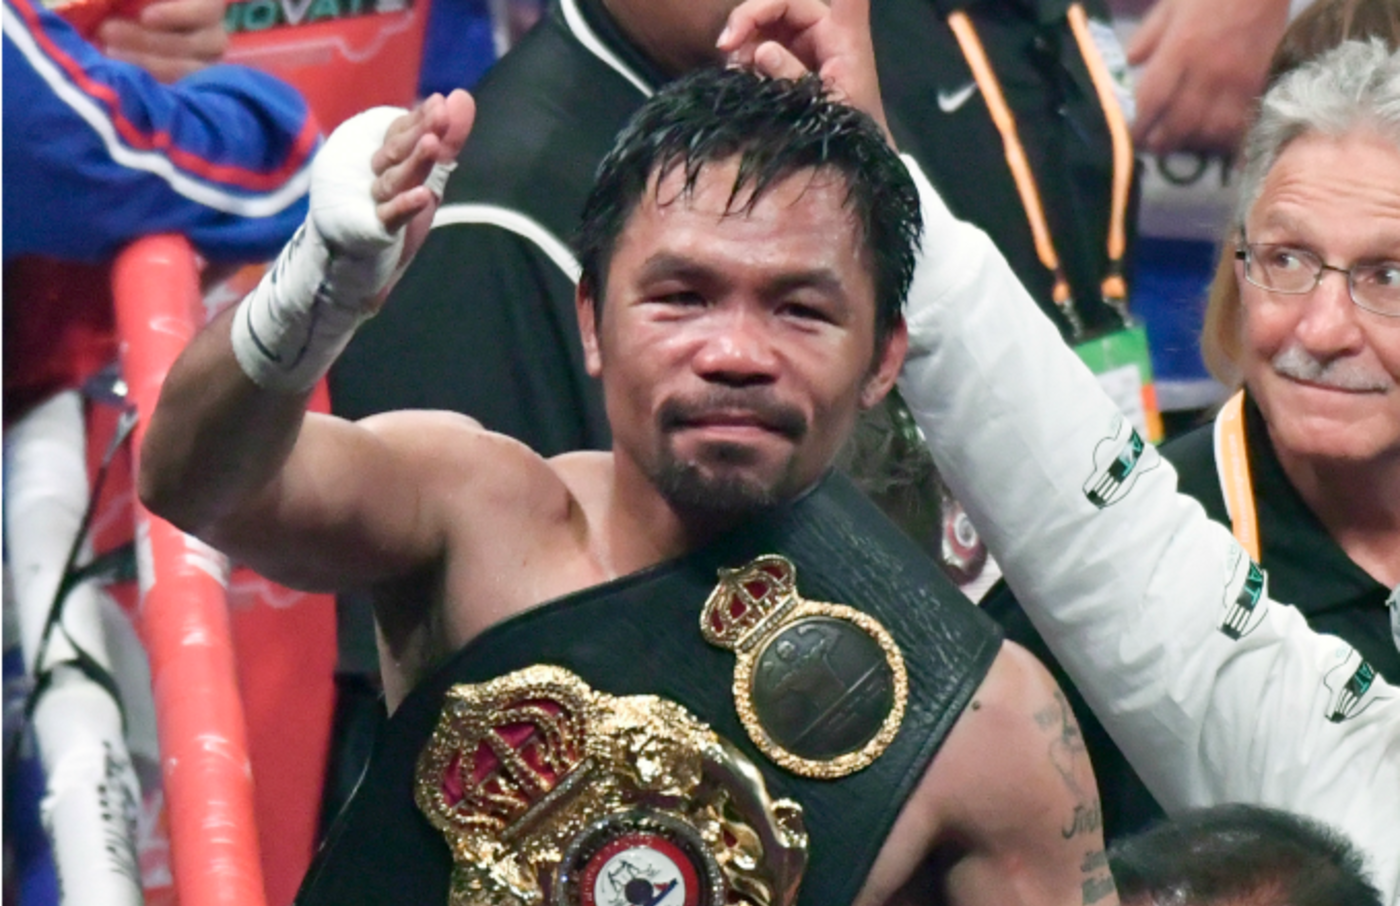 Manny Pacquiao waves to his fans after going 12 rounds